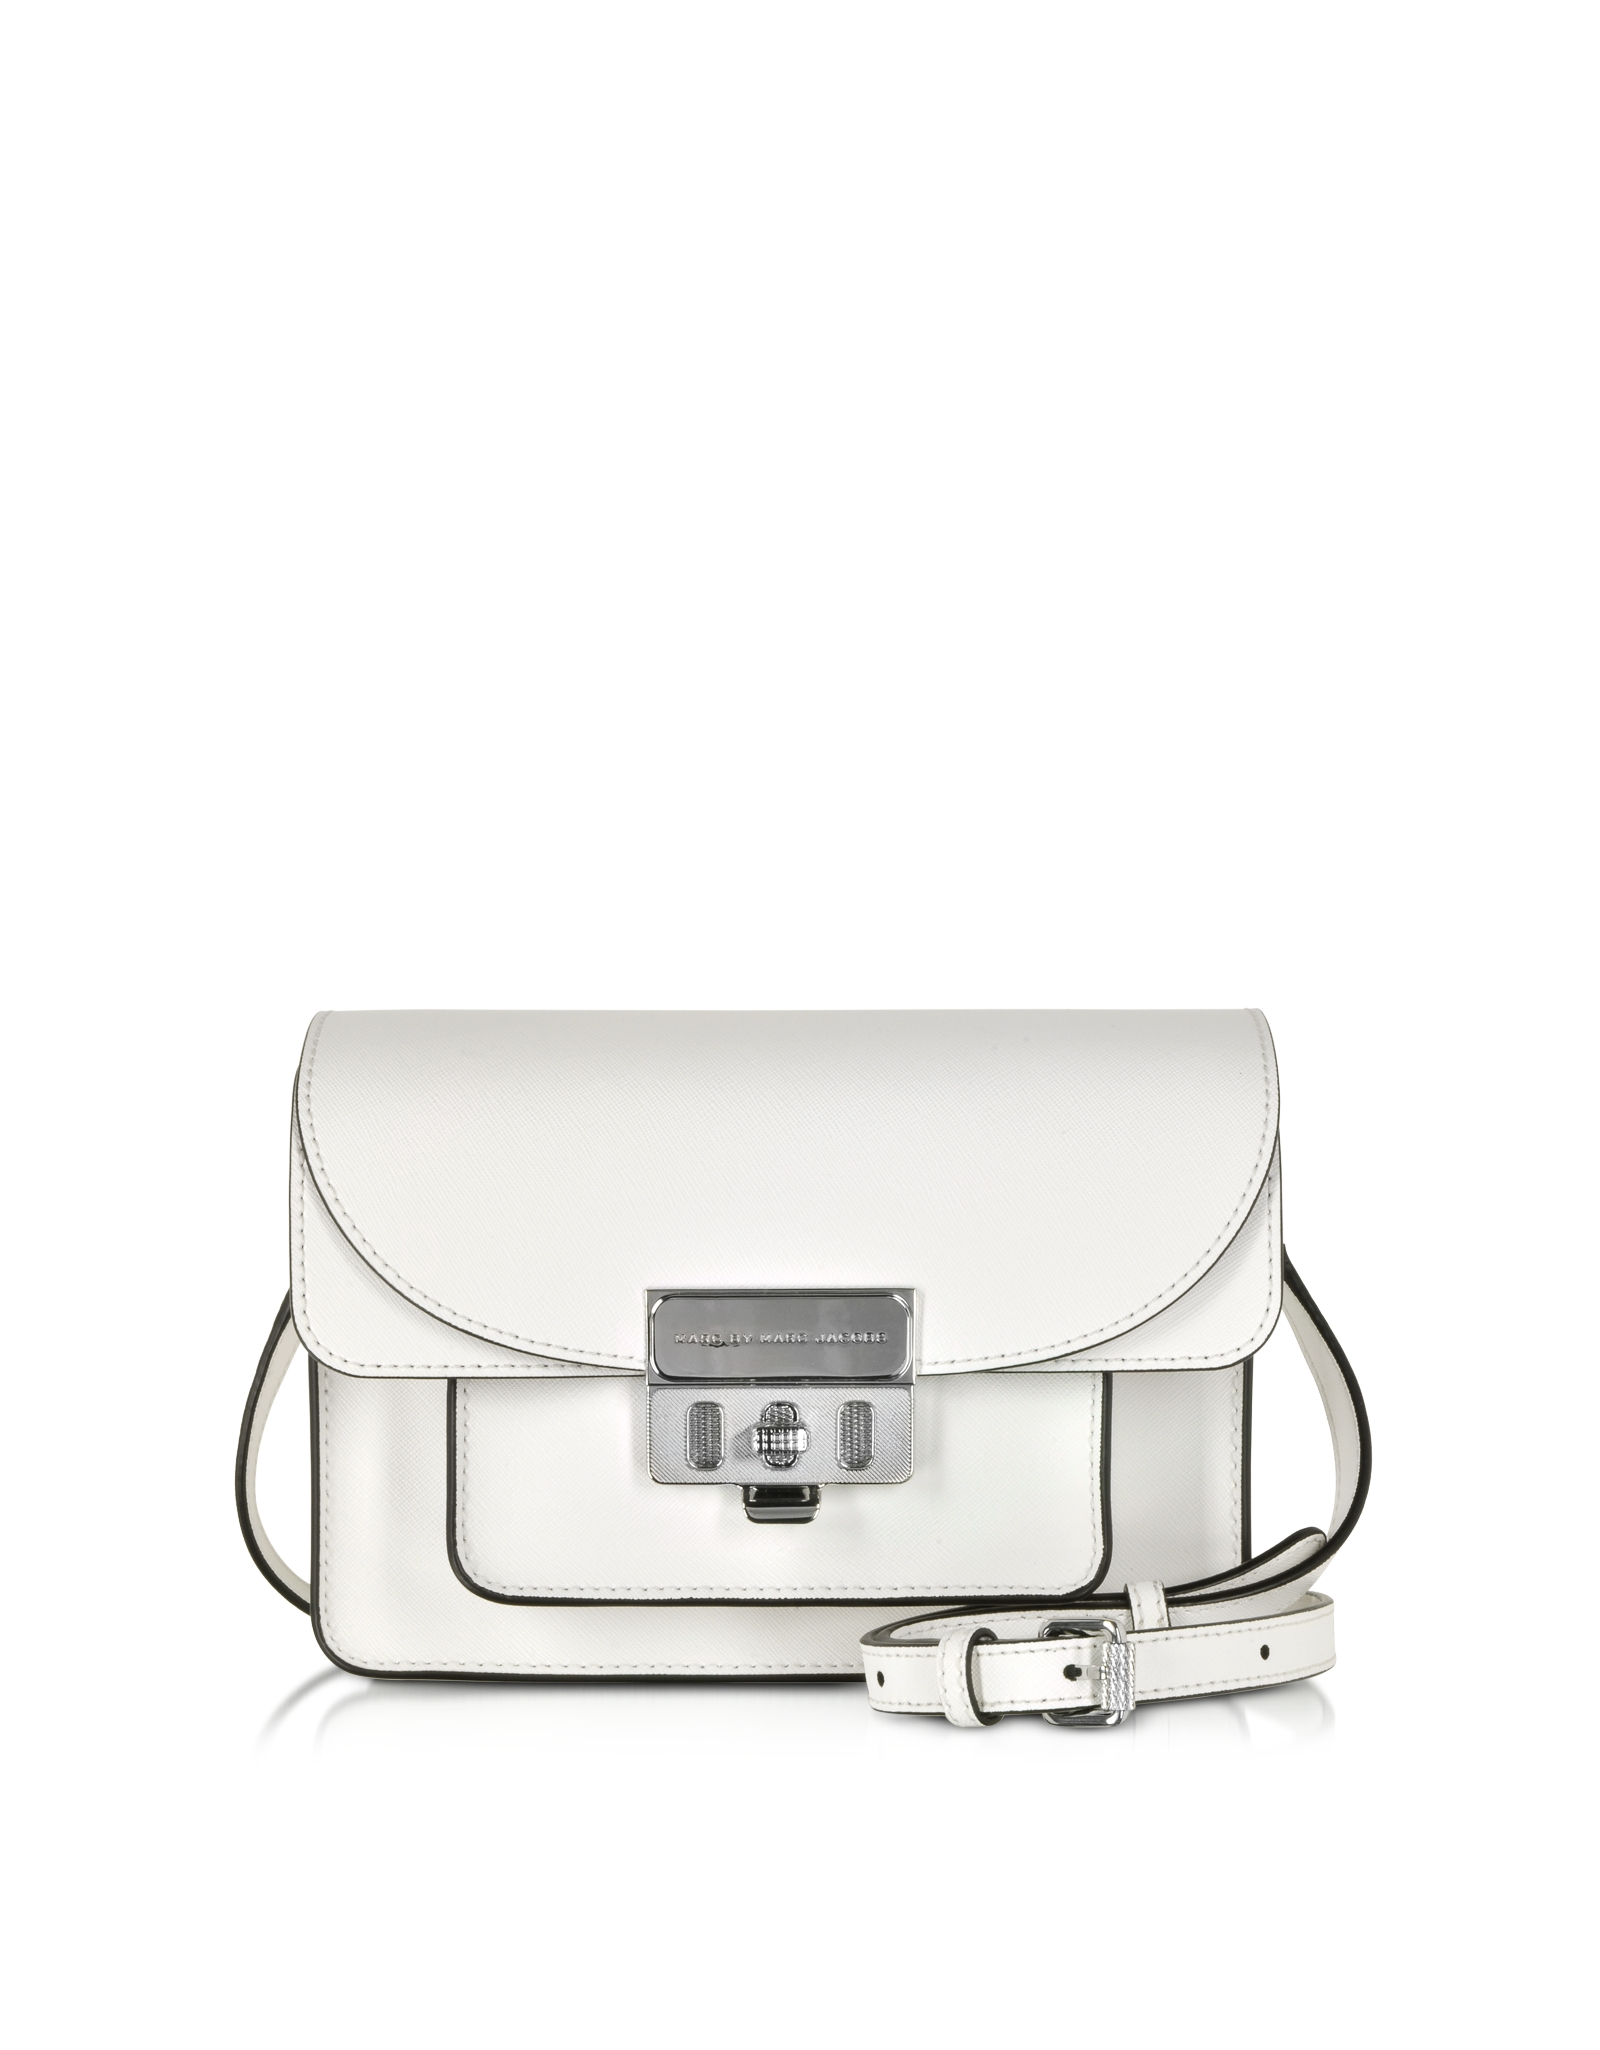 6155bf4e9 Marc By Marc Jacobs Lip Lock Star White Xbody Bag in White - Lyst